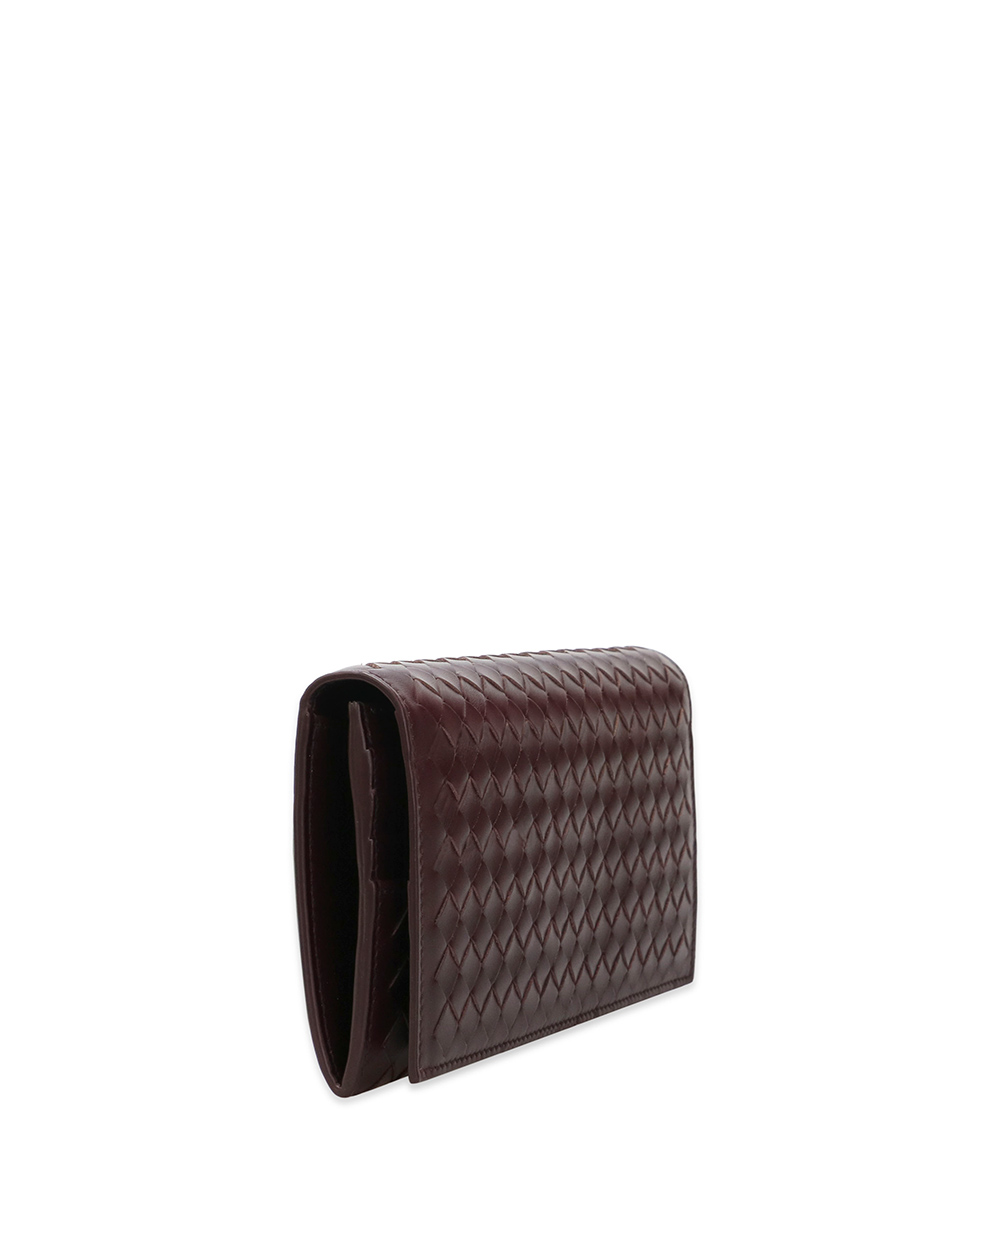 Woven Leather Wallet 4